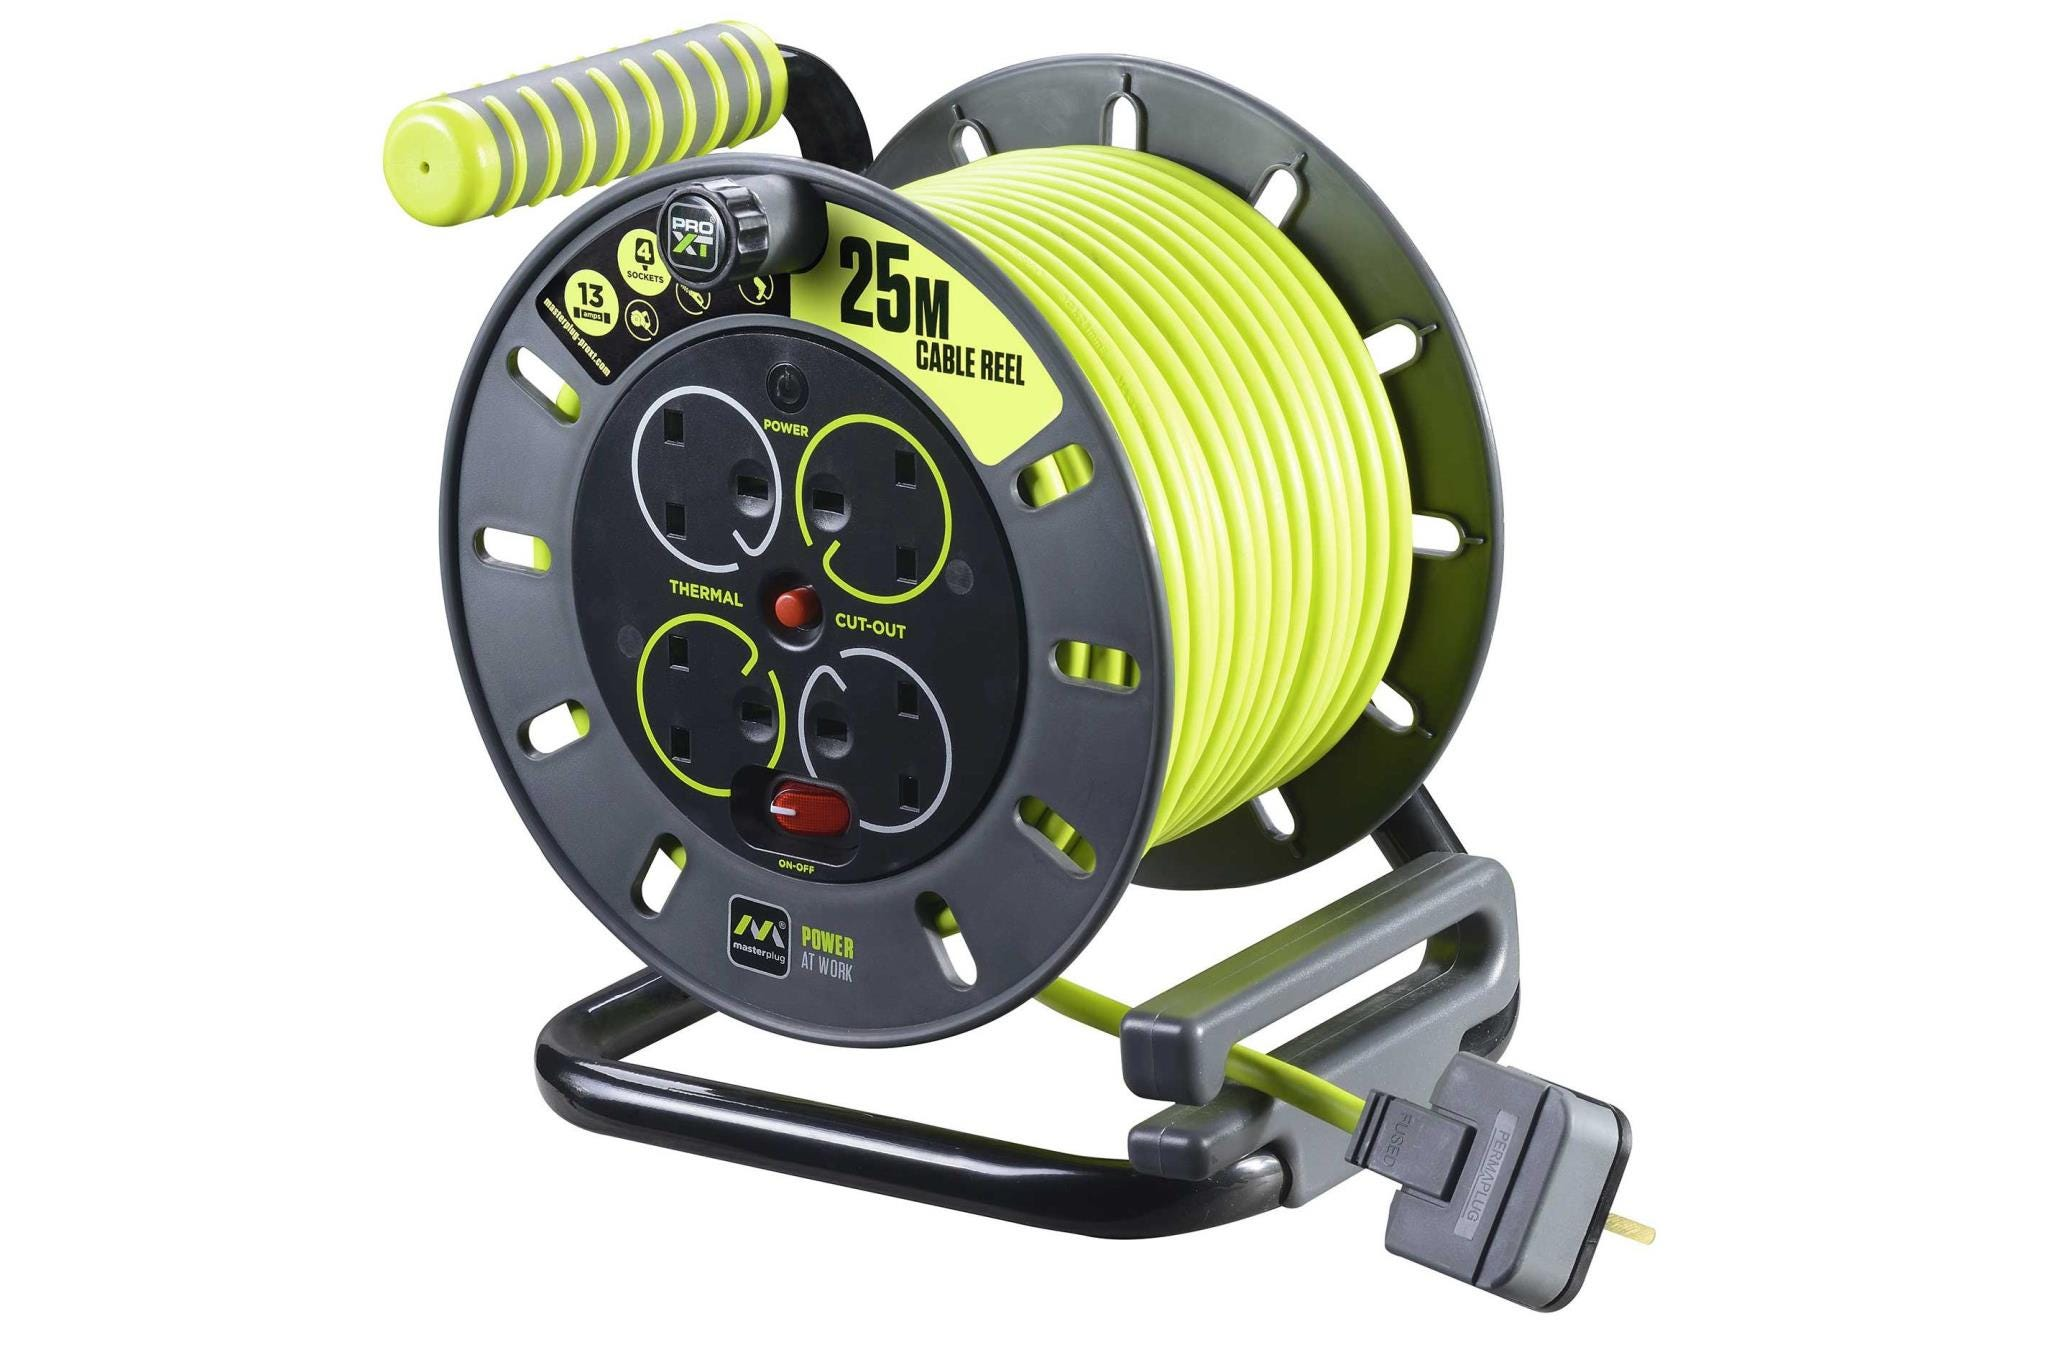 Masterplug 13A 4-Socket Extension Cable Reel - 25m